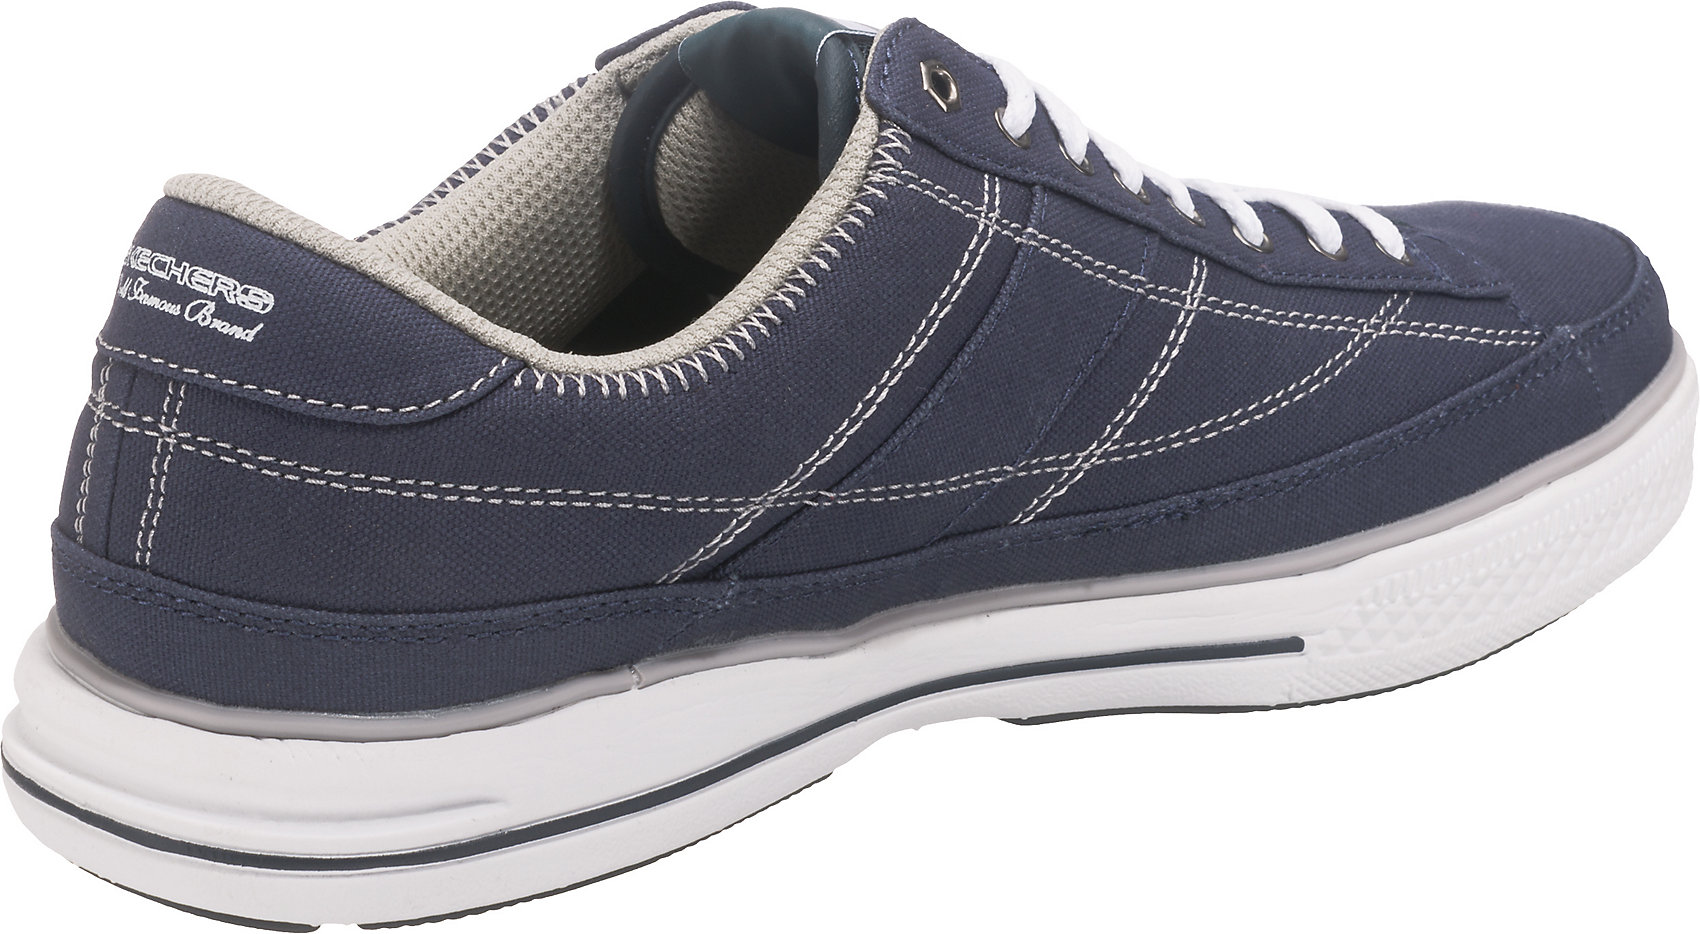 Neu SKECHERS ARCADE CHAT MF Sneakers Low 5756600 für Herren hrukk